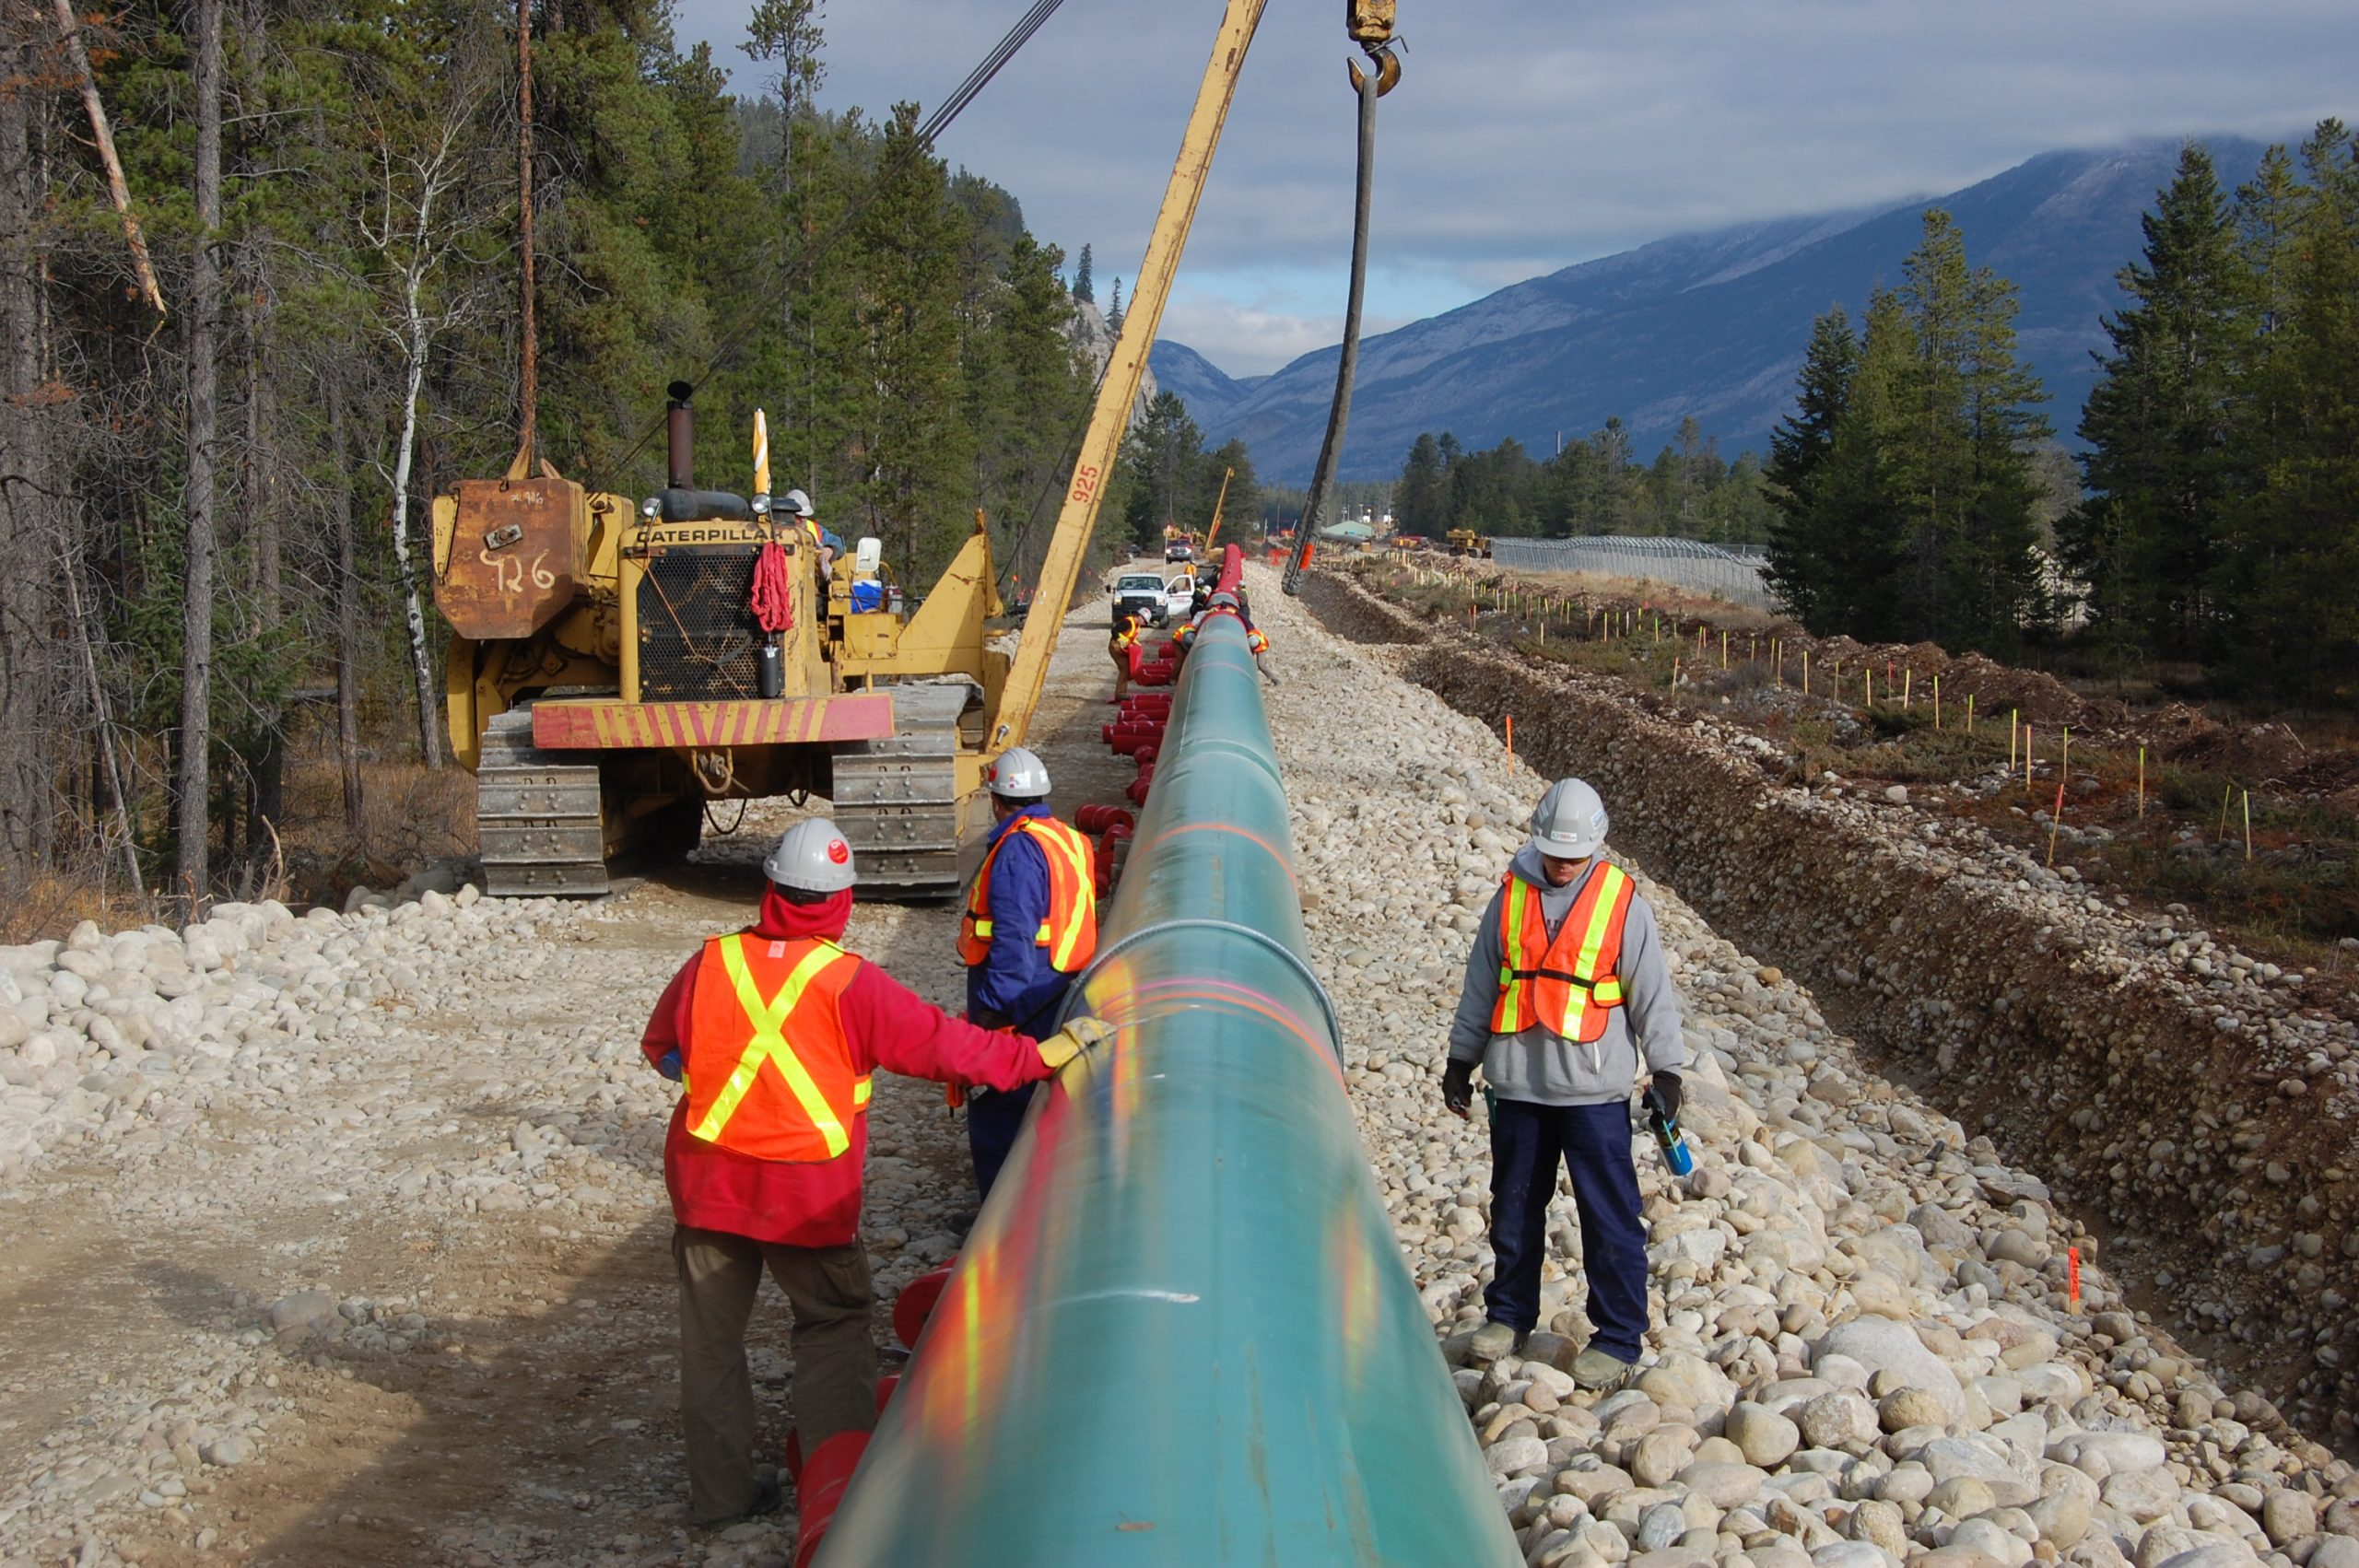 Trans Mountain boss says pipeline worksites will have strict COVID-19 safety protocols